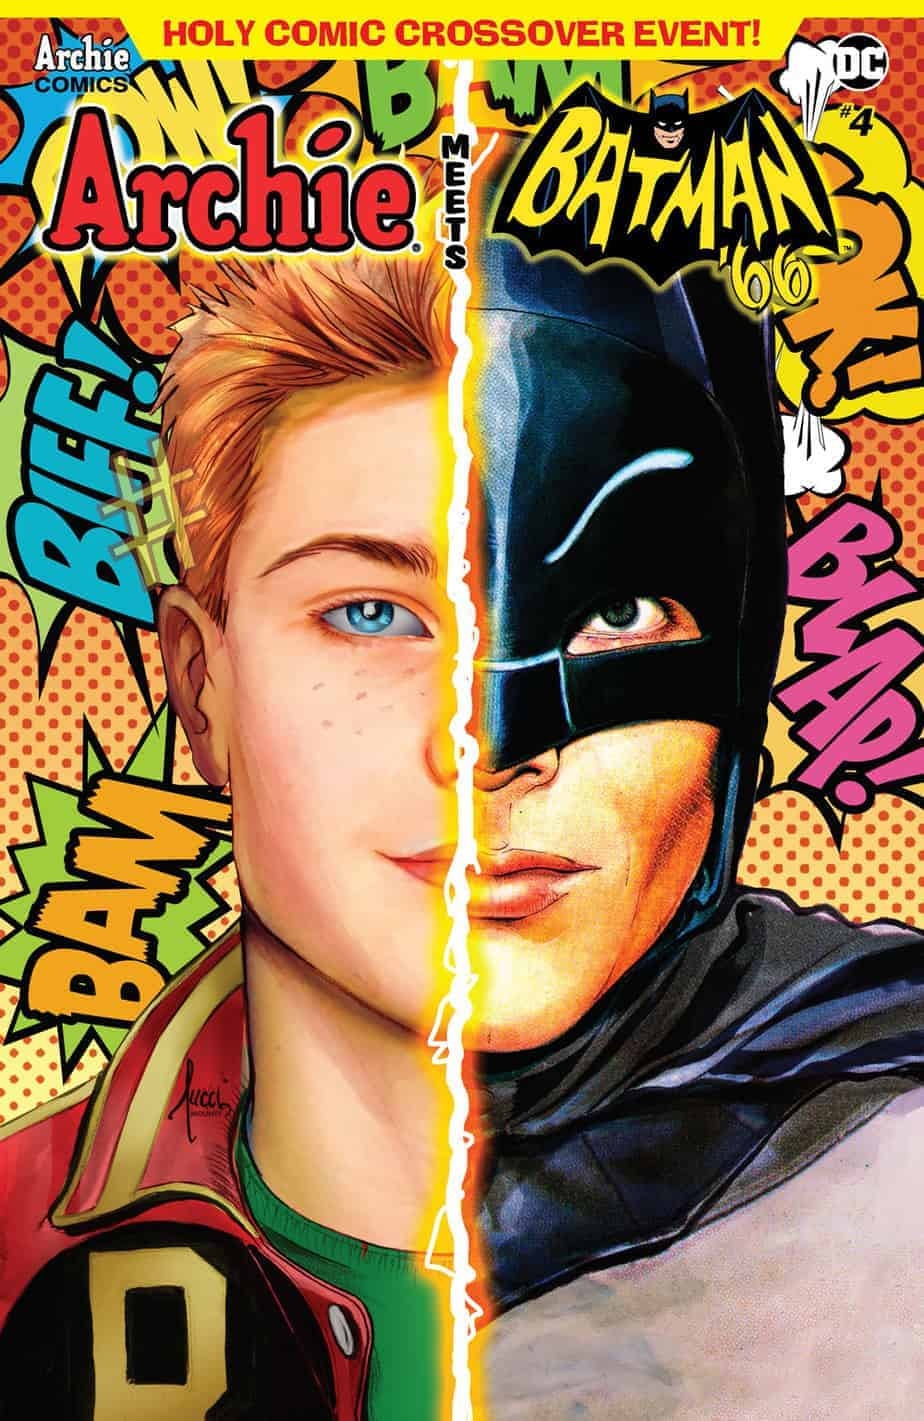 ARCHIE MEETS BATMAN '66 #4 - Variant Cover by Billy Tucci